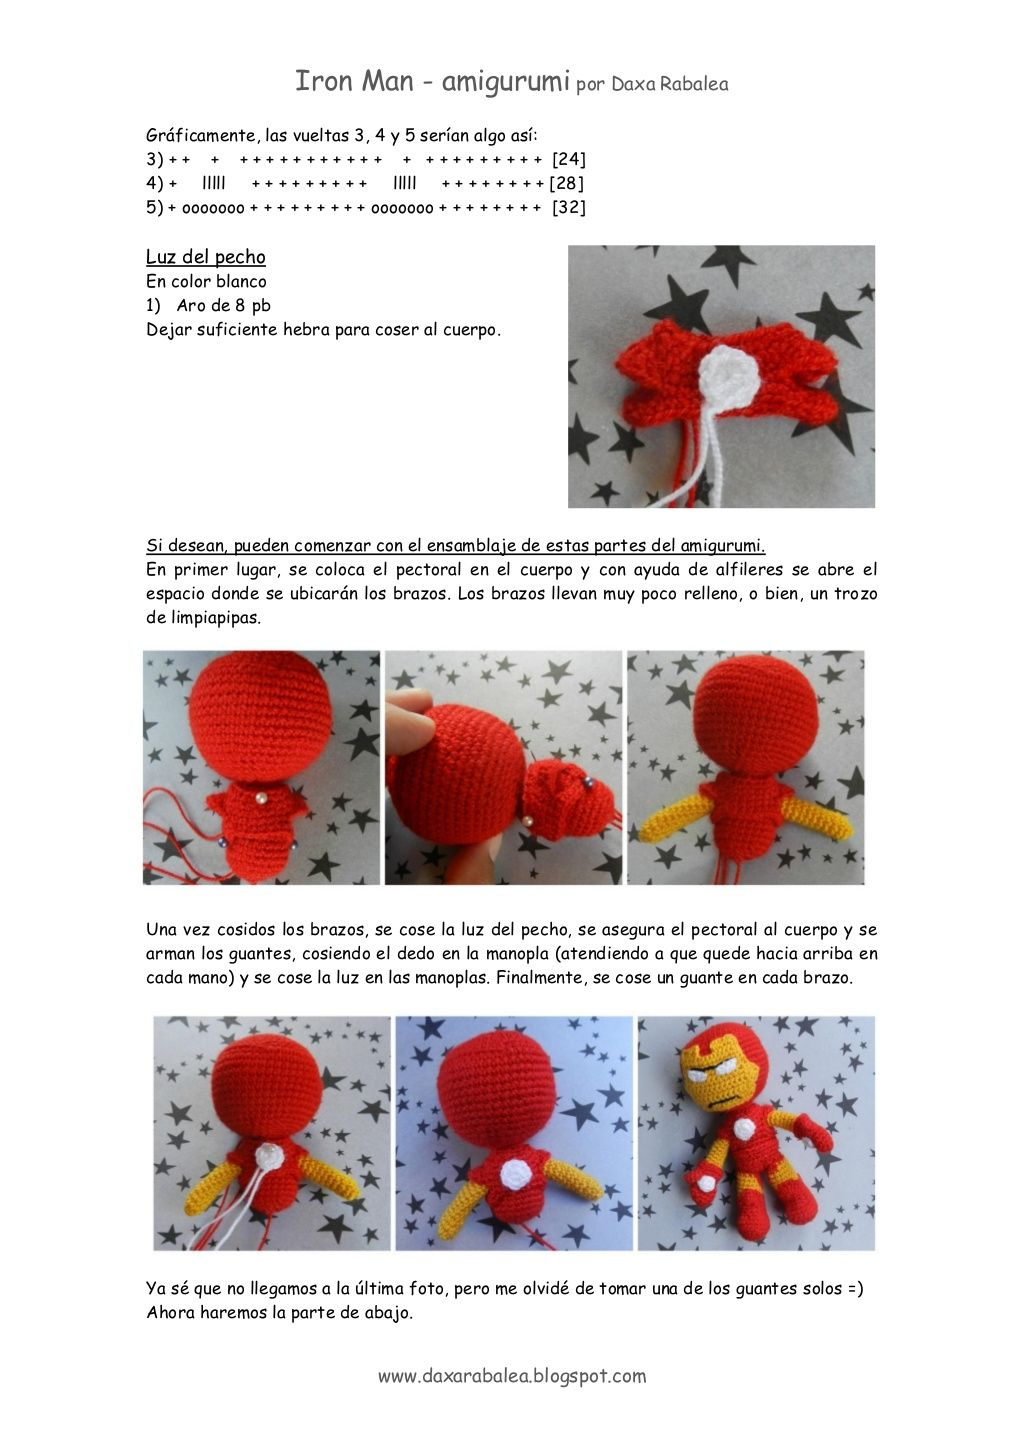 IRON MAN, DE GANCHILLO/CROCHET-PATRON 3/6 | Peluches tejidos o de ...